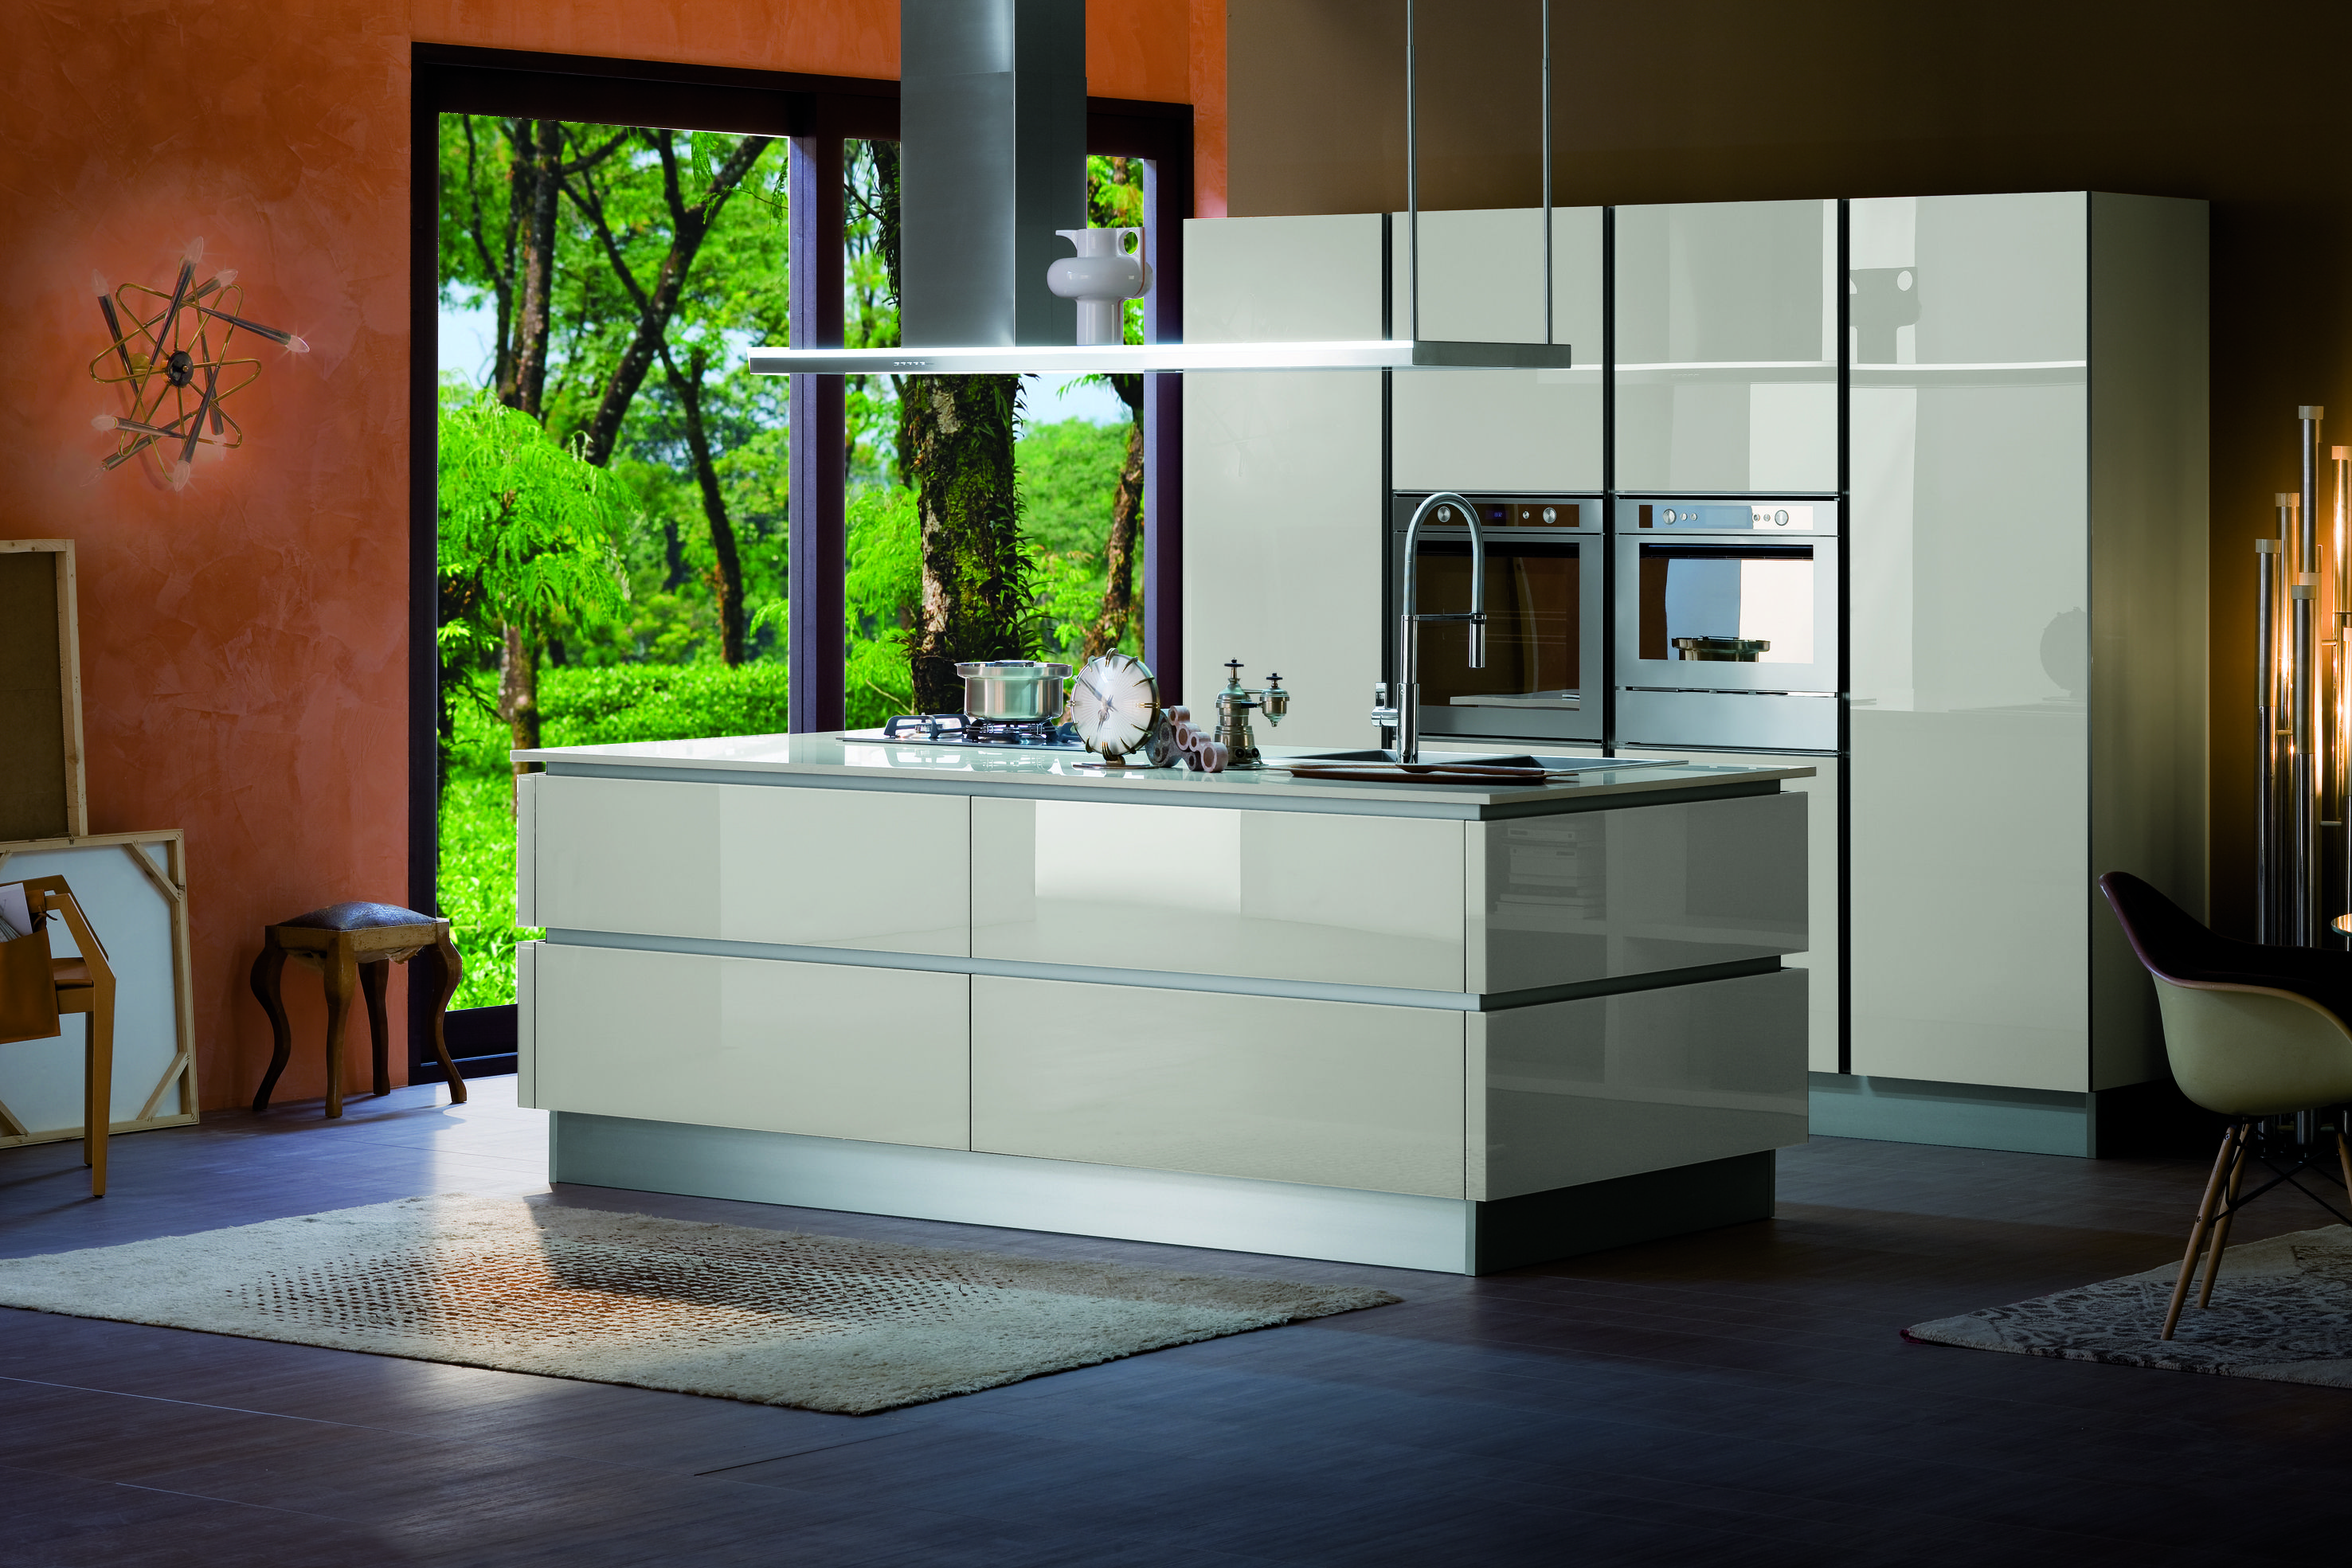 Veneta cucine ri flex grigio corda kitchens pinterest for Cucine pinterest